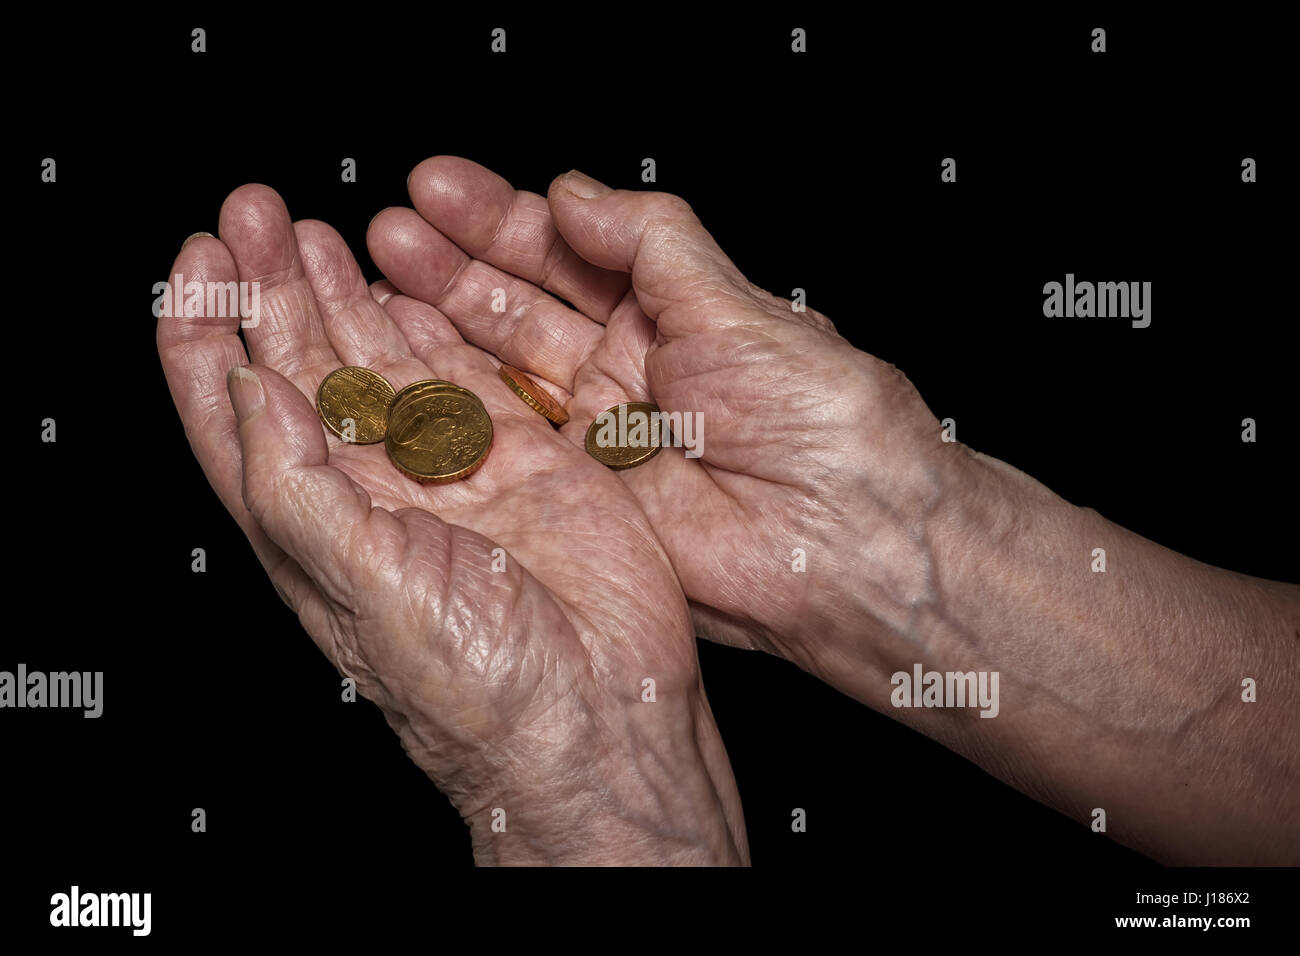 Senior woman hands holding some euro coins. Pension, poverty, social problems and senility theme. Isolated on black, - Stock Image